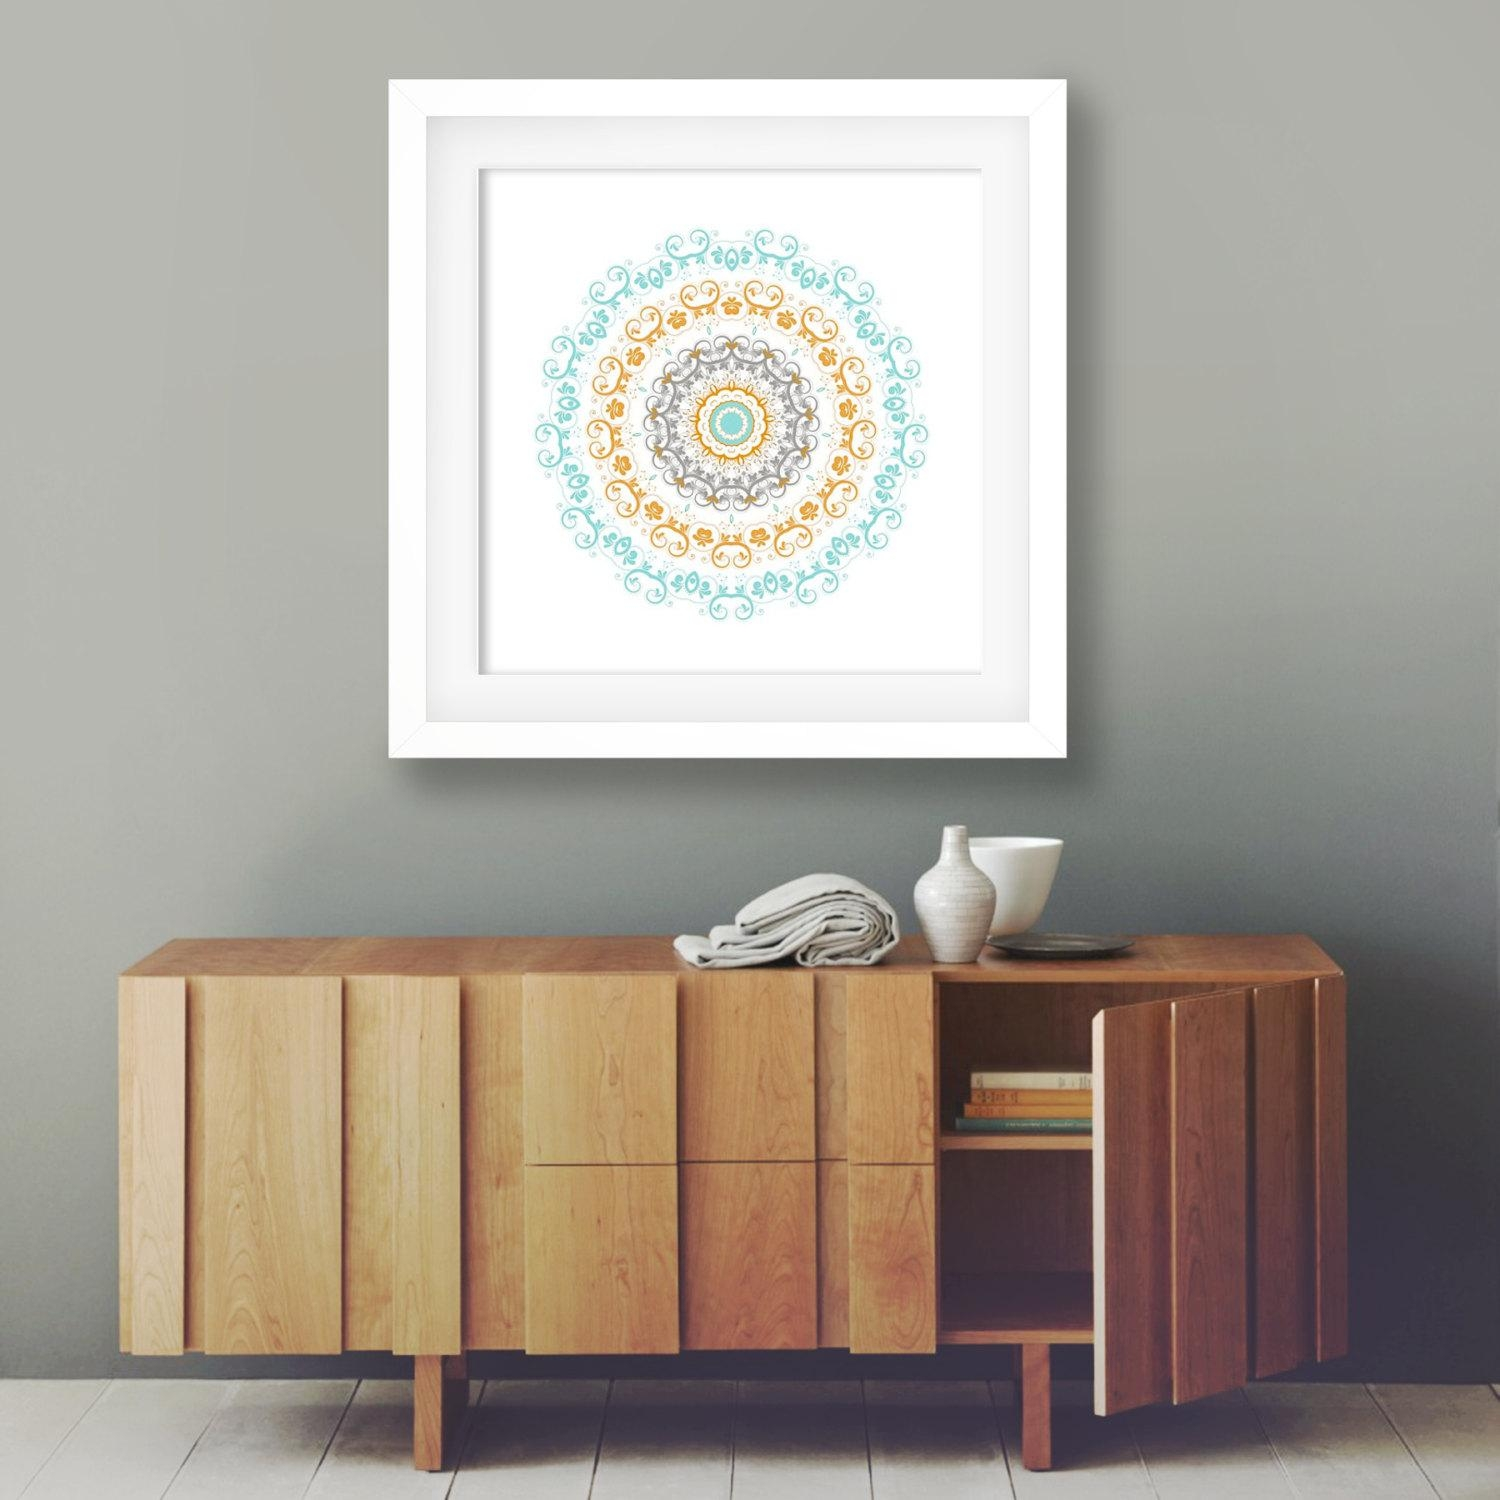 Colorful Poster Bohemian Decor Boho Artwork White Orange And Intended For Orange And Turquoise Wall Art (View 19 of 20)